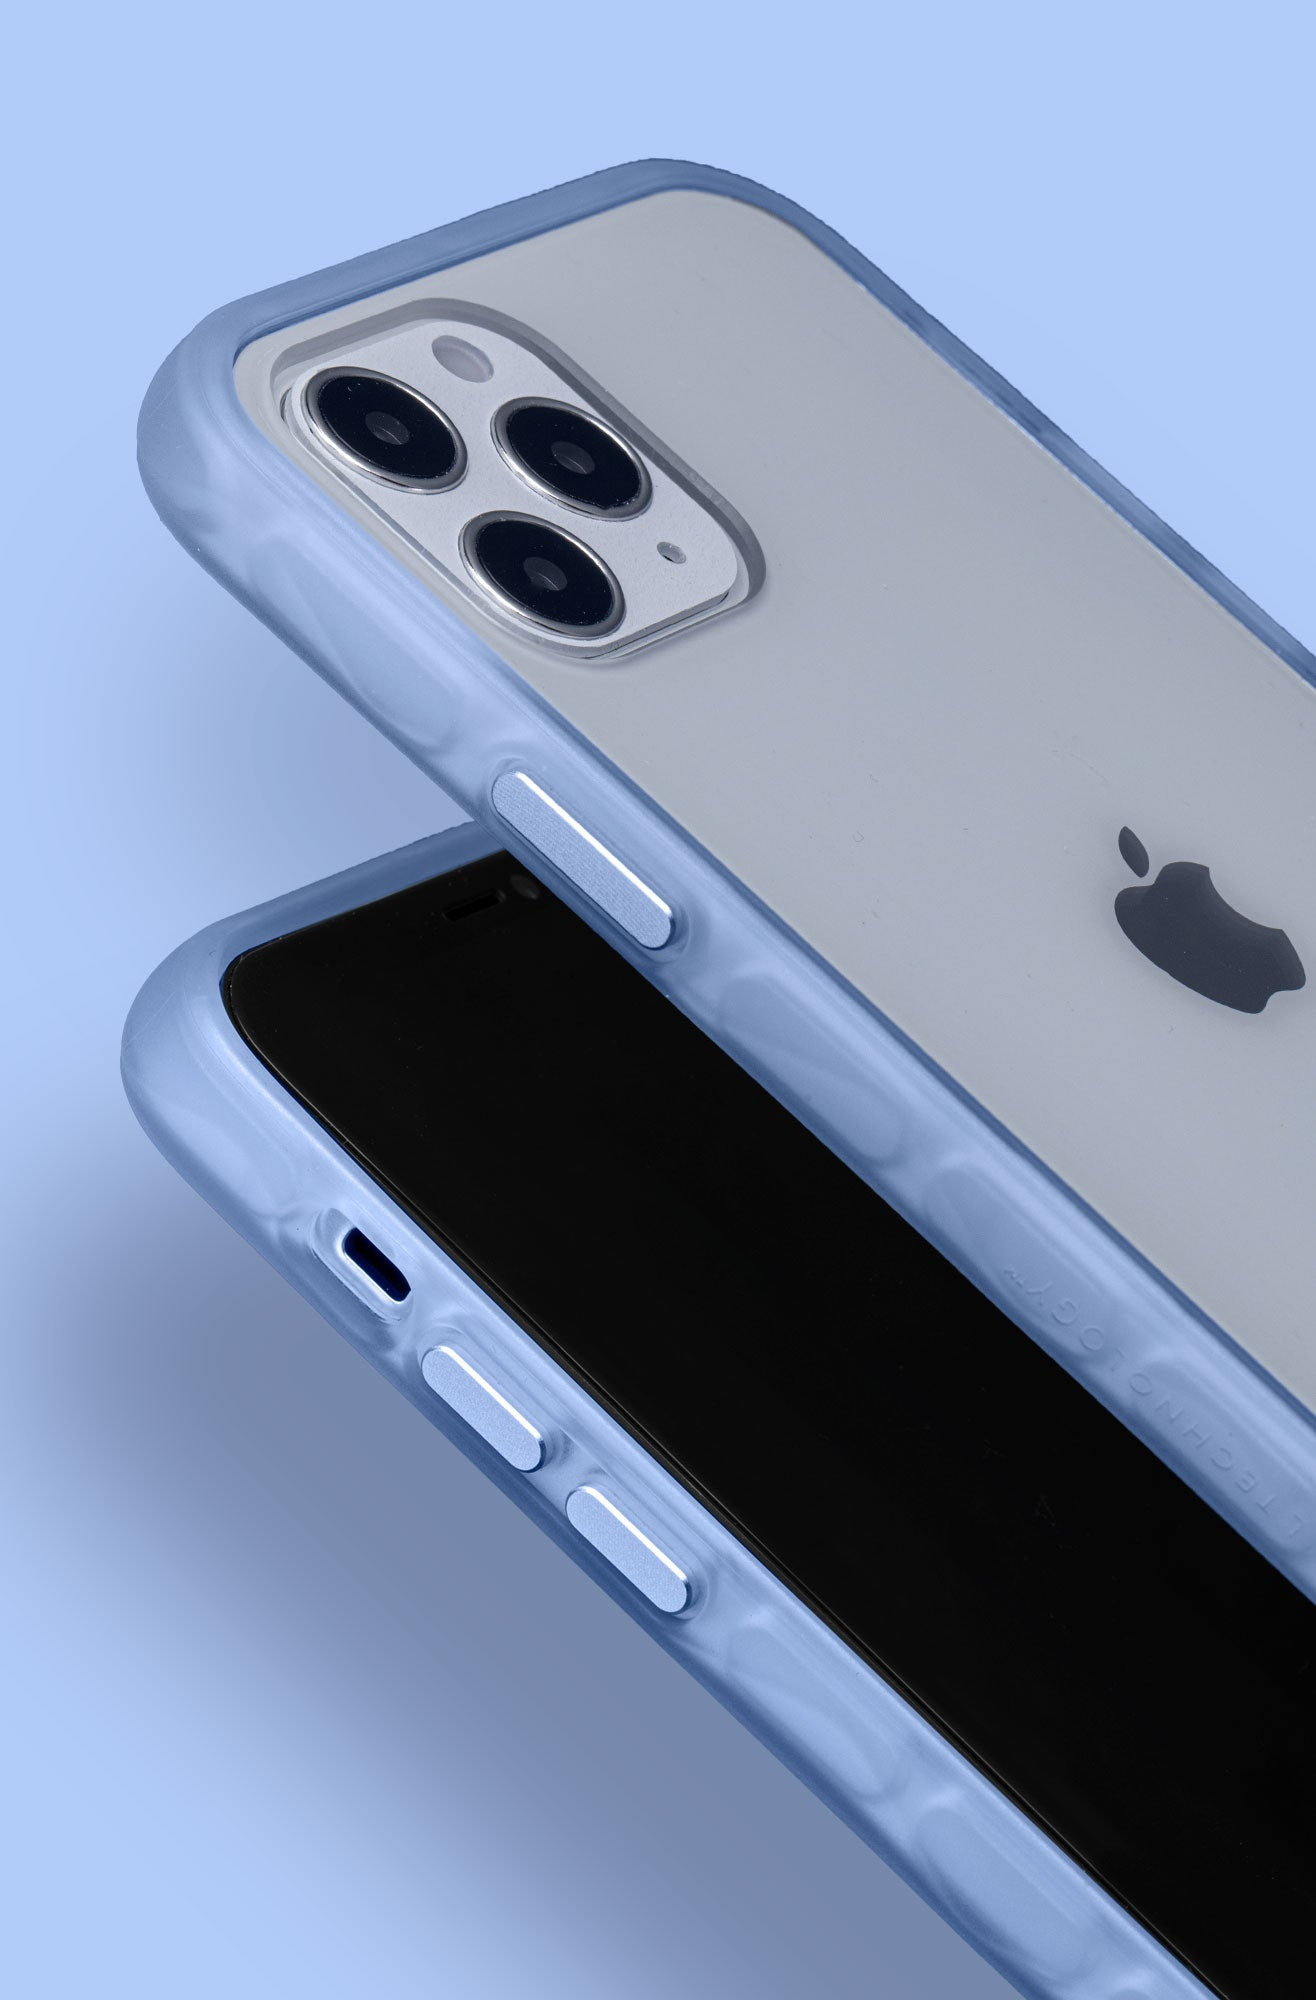 LAUT - CRYSTAL MATTER (IMPKT) - TINTED SERIES case for iPhone 12 series - MACHINED ALUMINUM BUTTONS